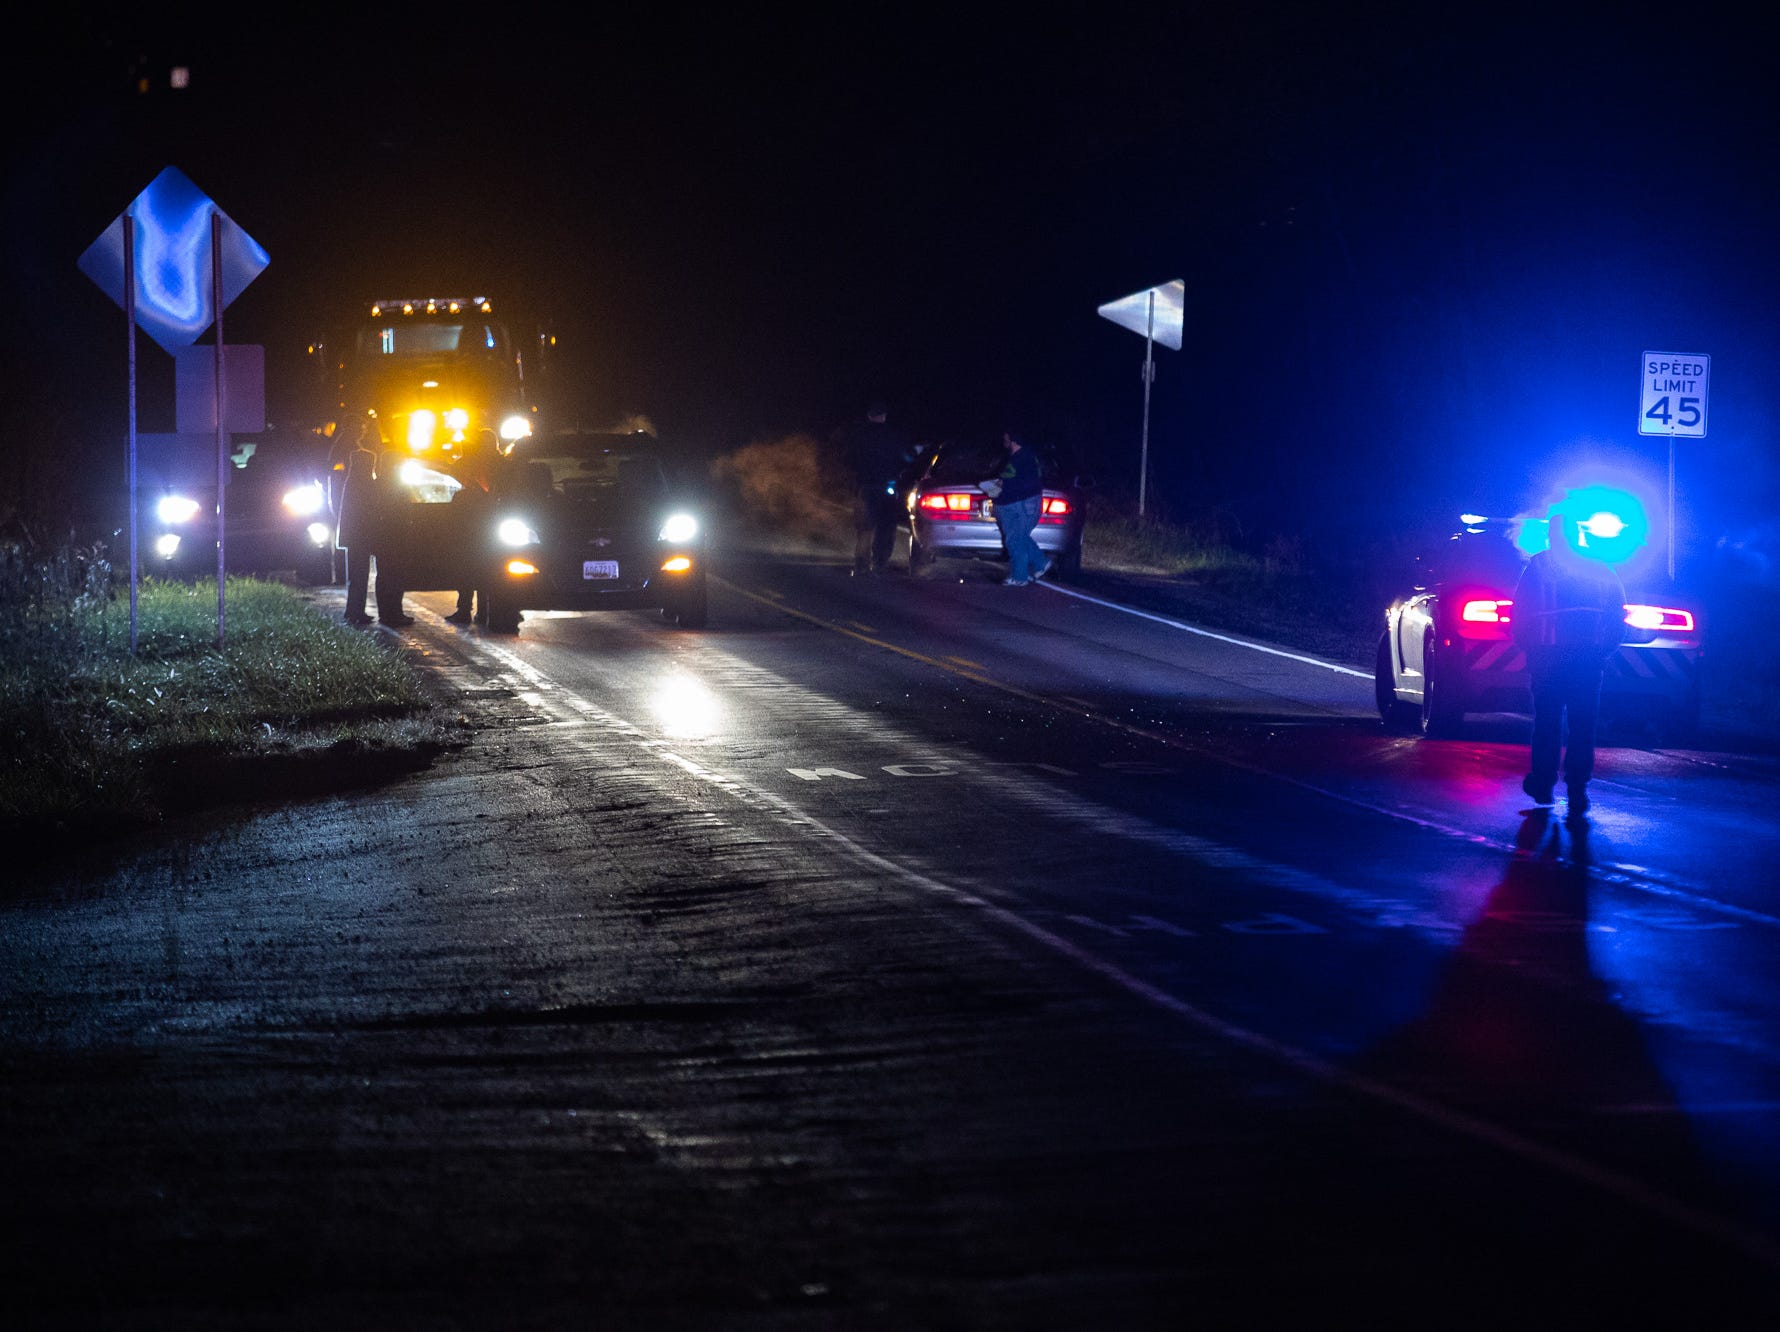 Emergency personnel work at the scene of a critical pedestrian struck near the intersection of Red Hill Rd. and Hanover St. in Oxford Township on Dec. 16.